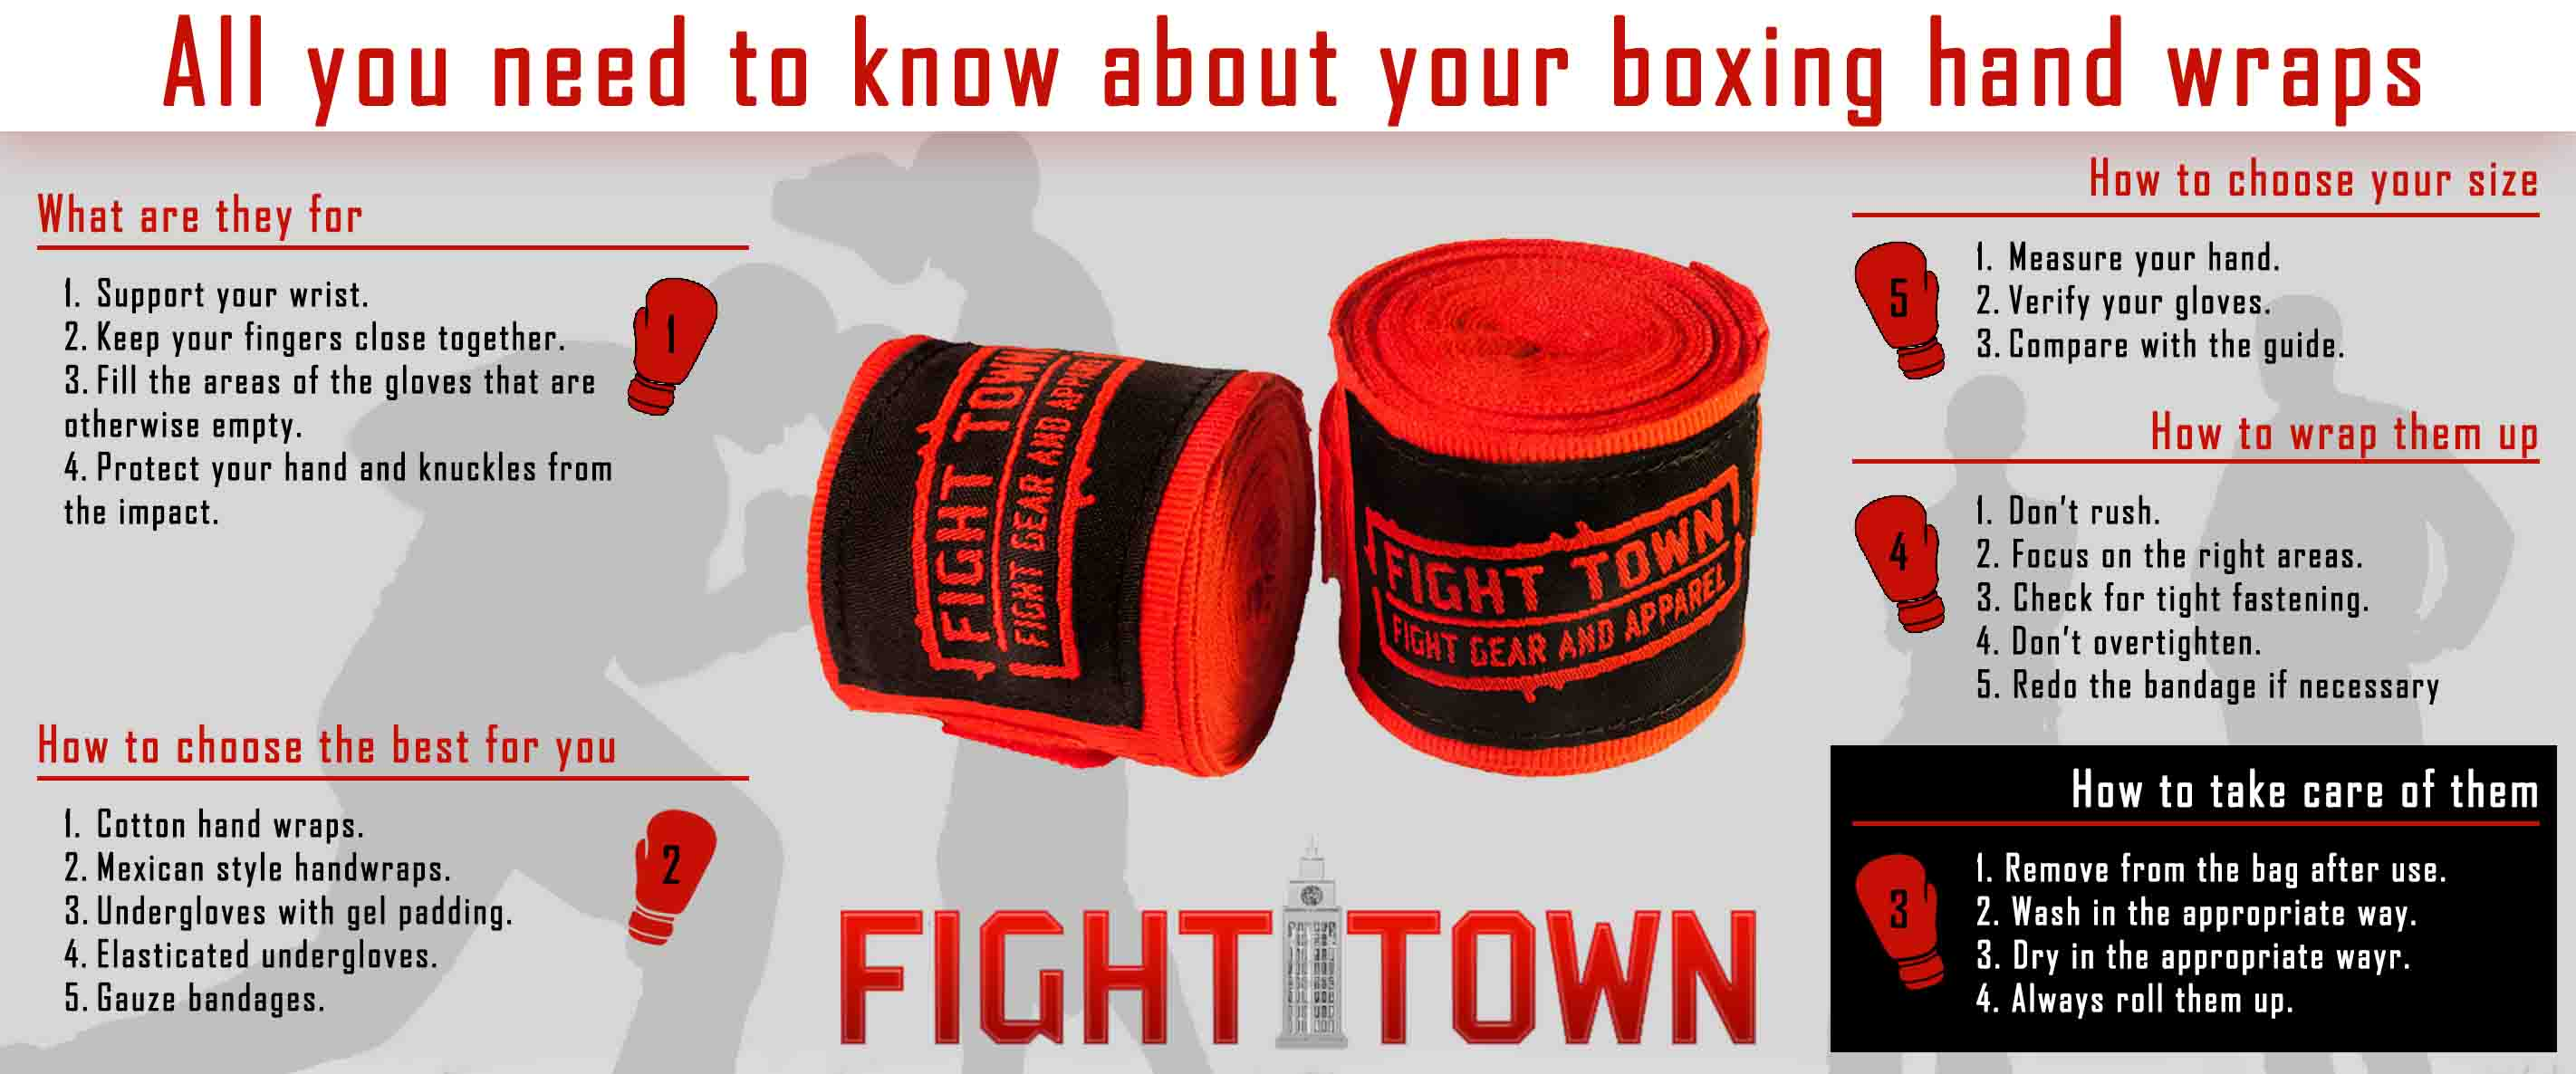 How to take care of boxing hand wraps